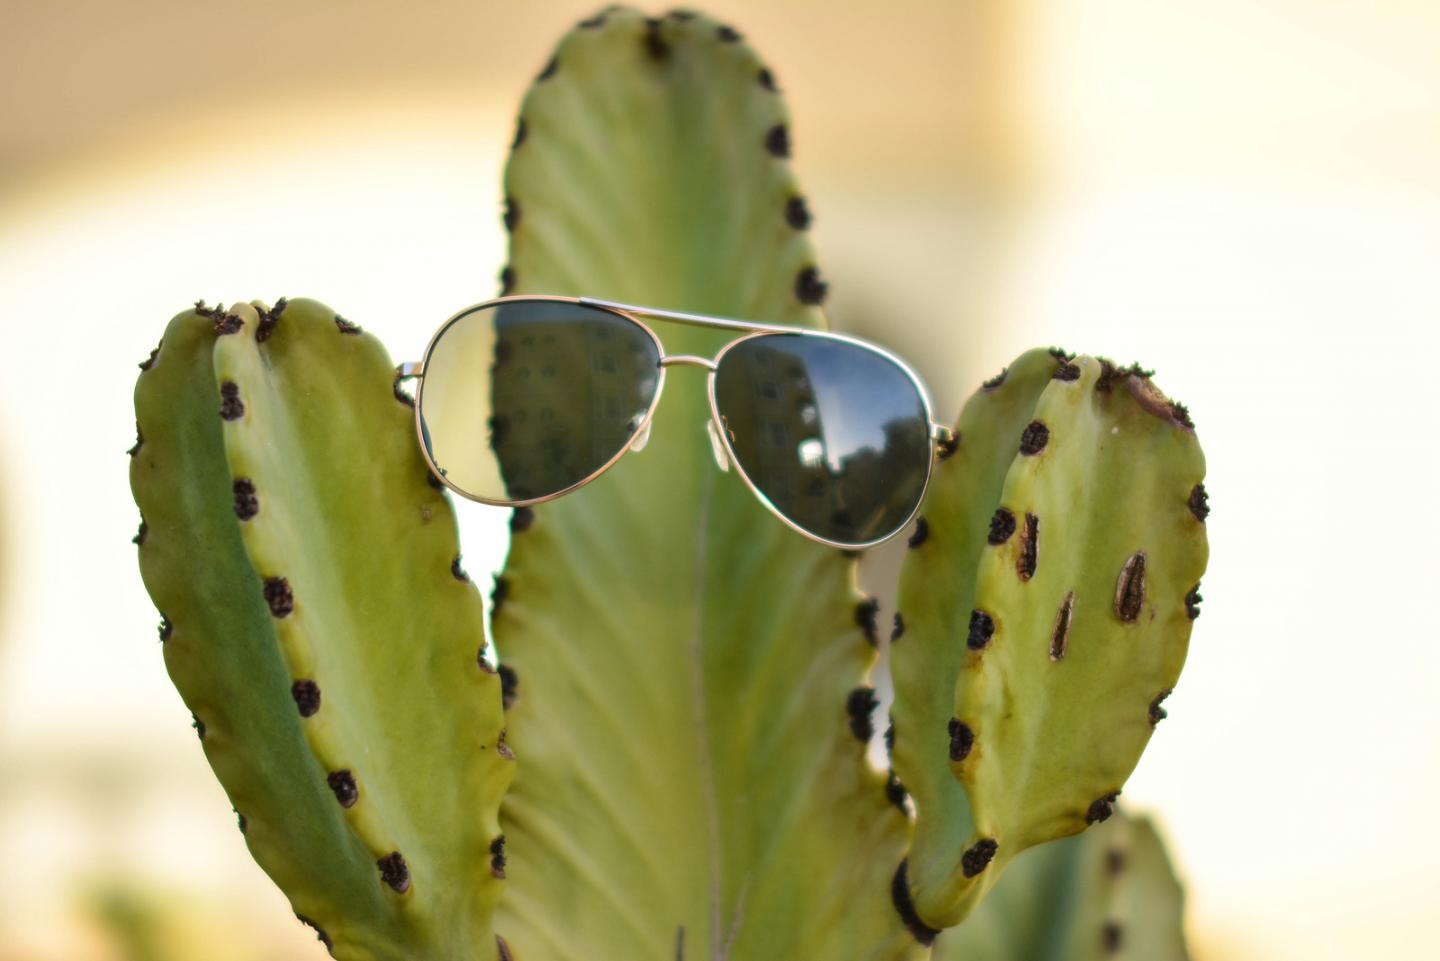 Forever 21 sunglasses on cactus